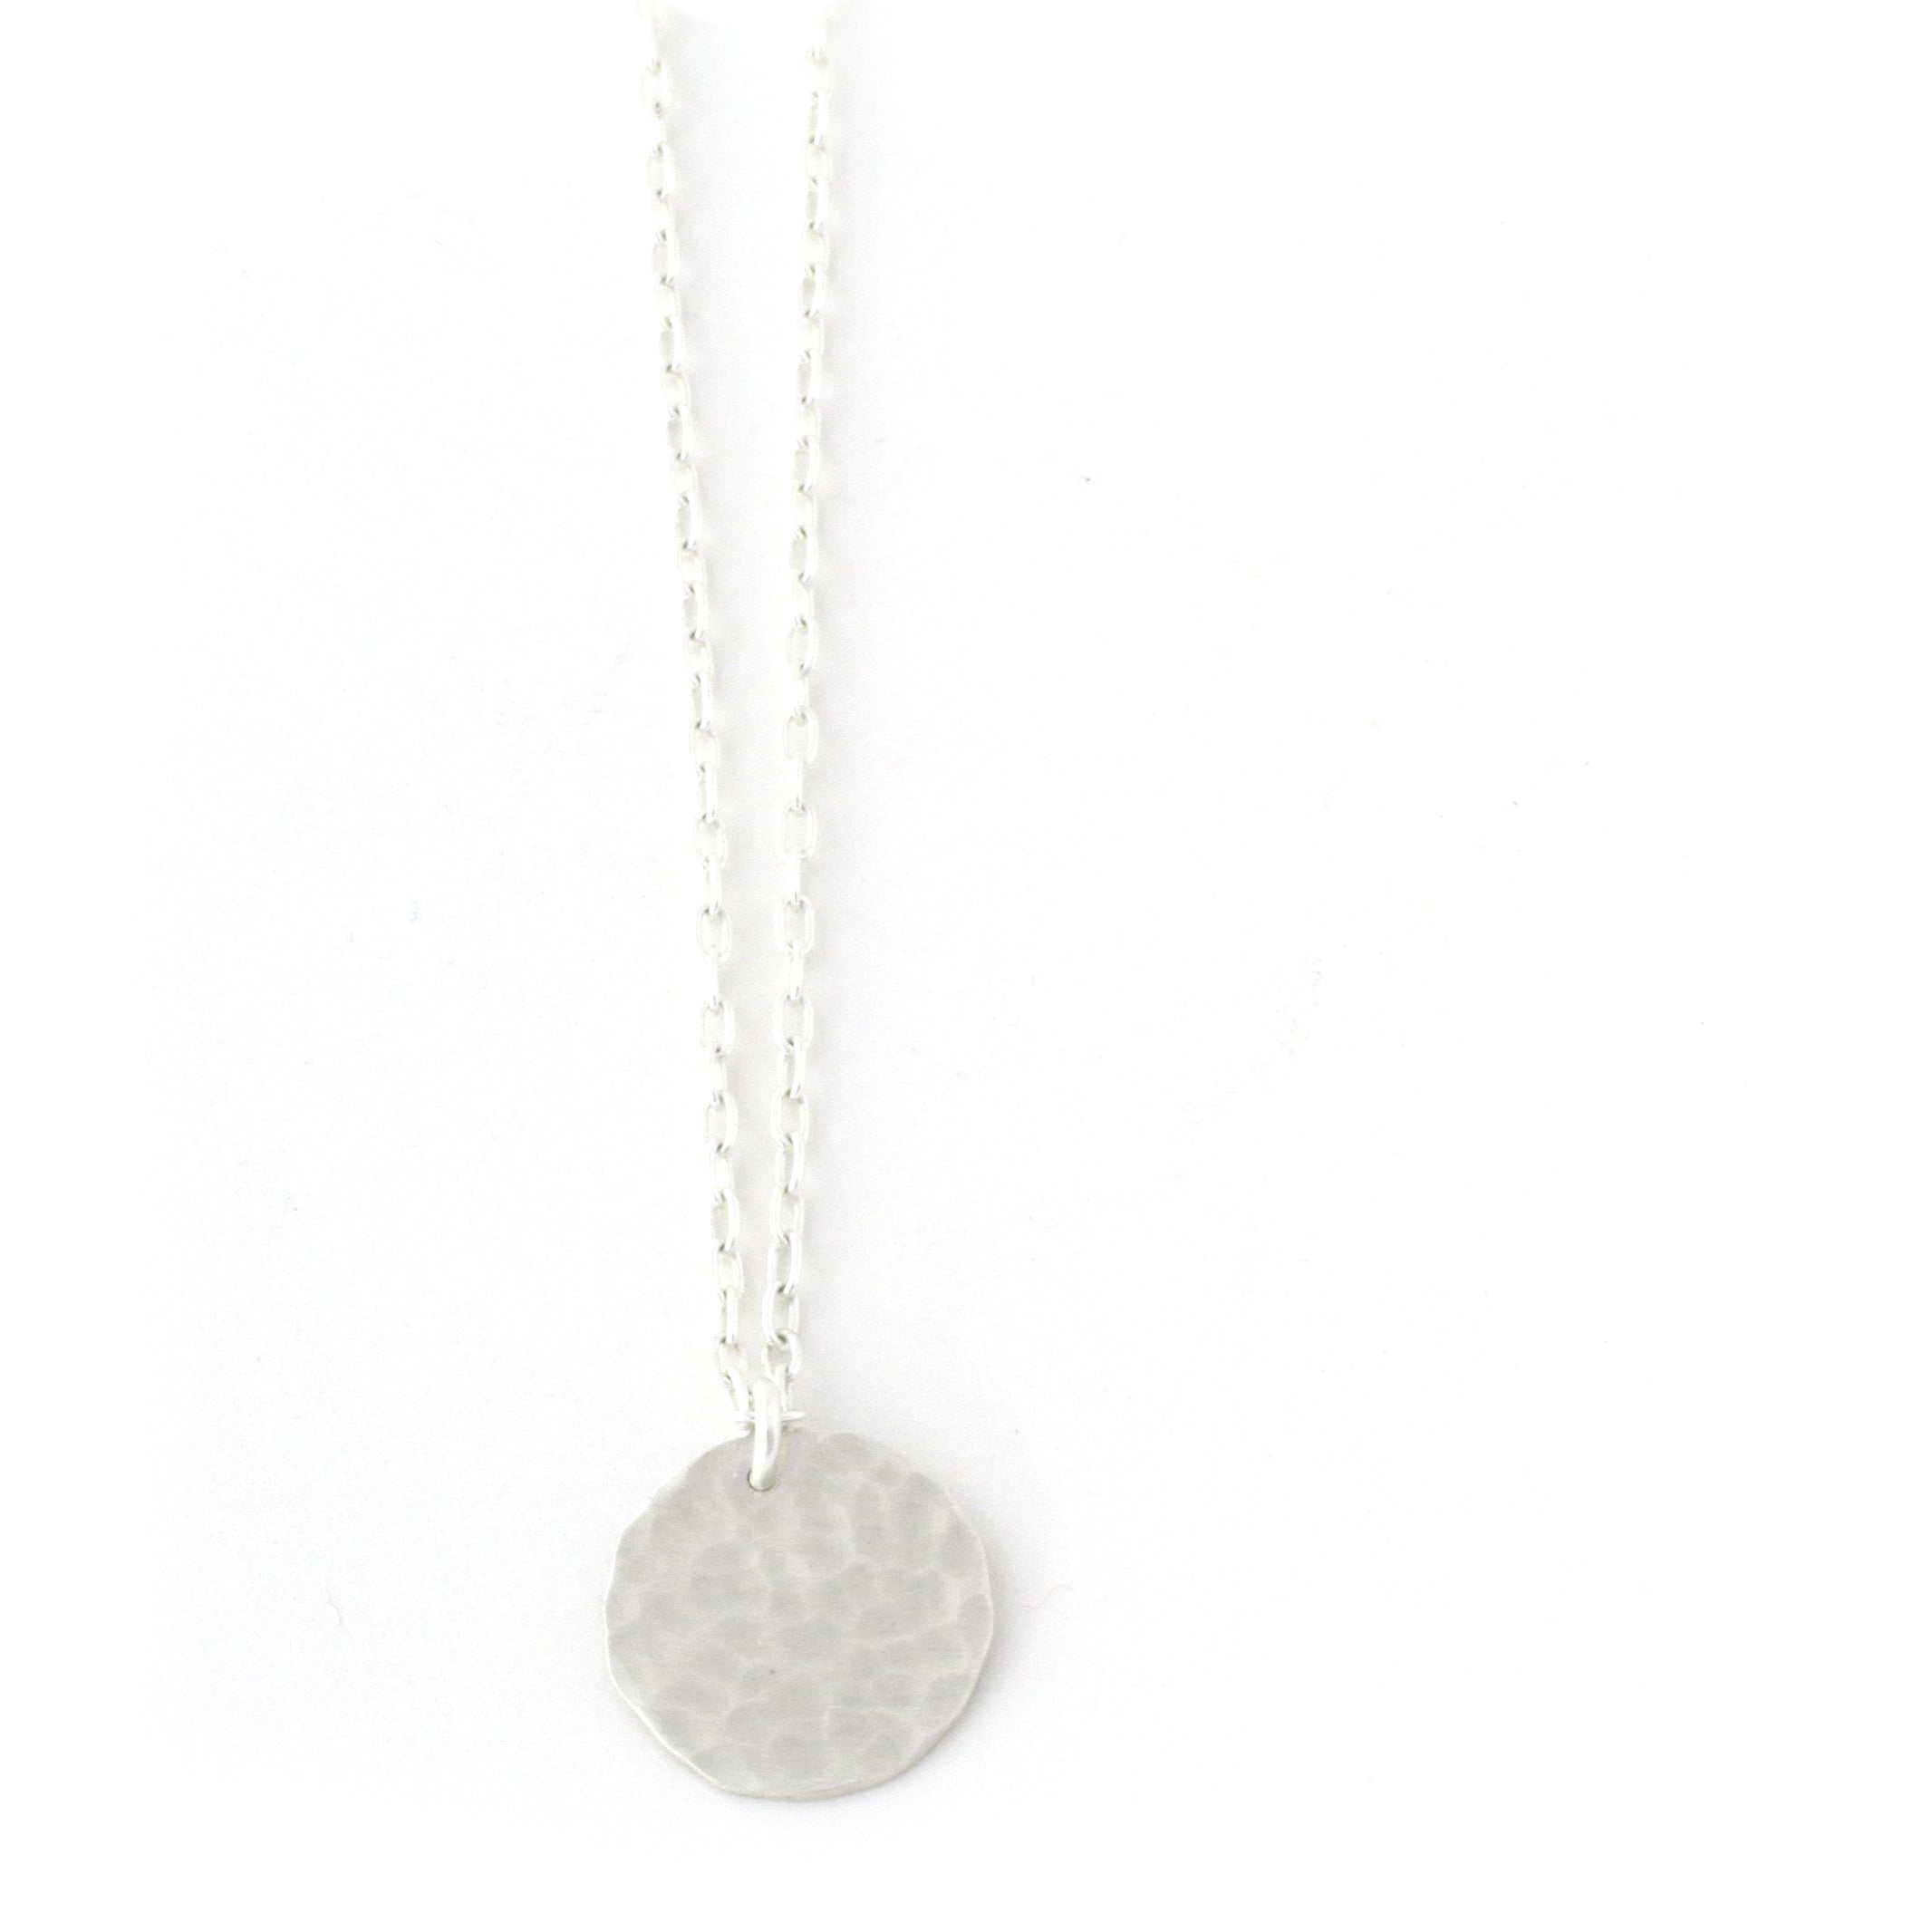 Luna Hammered Necklace (Small)